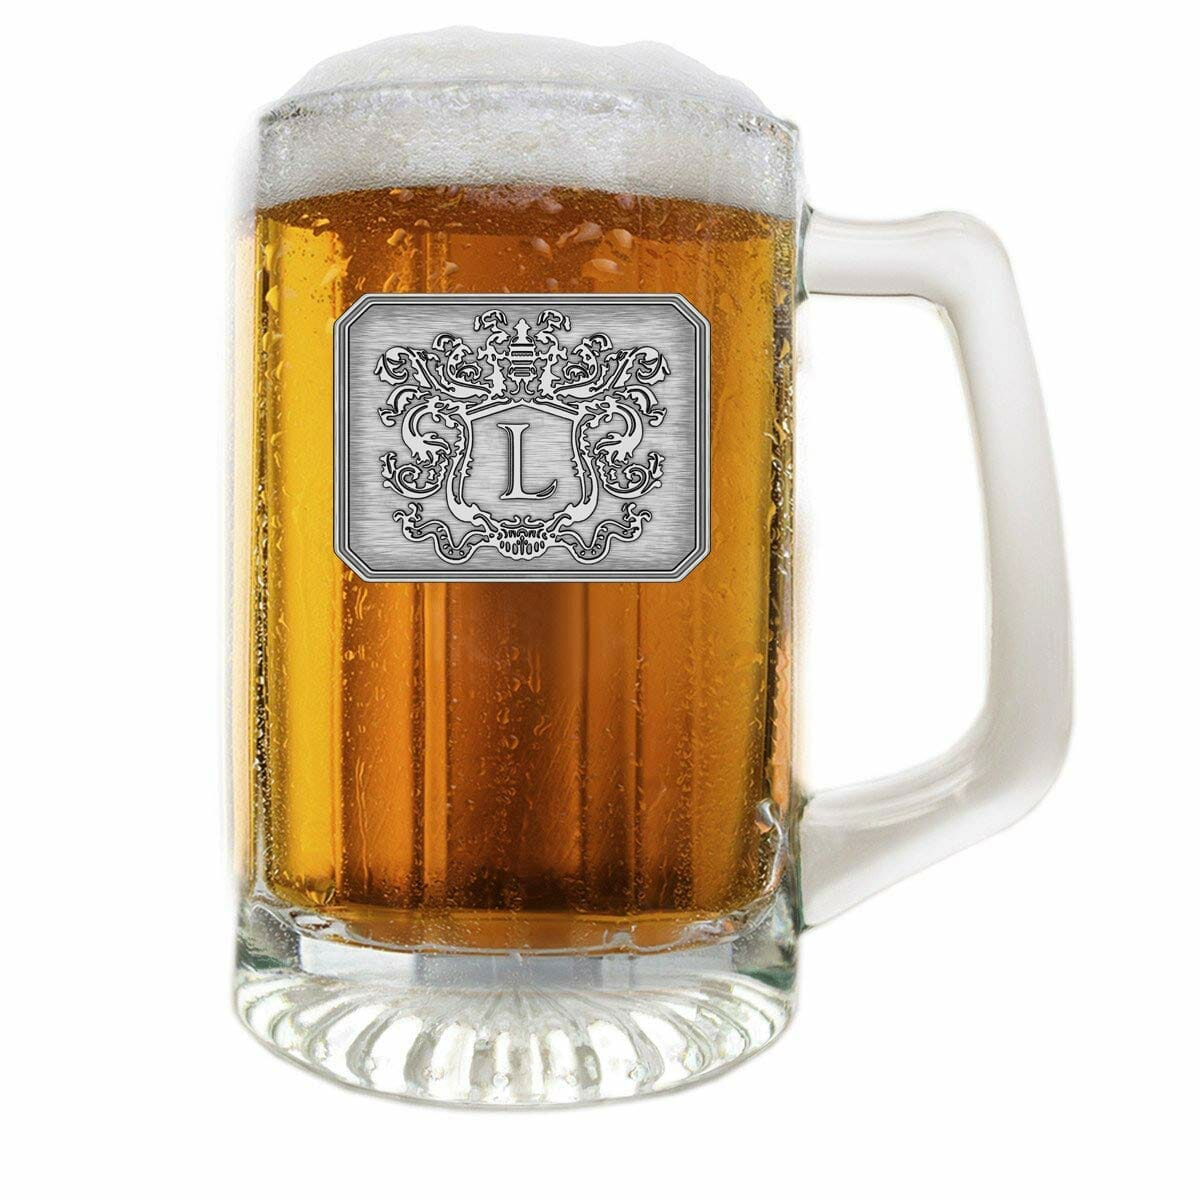 personalized-gifts-for-men-beer-mug